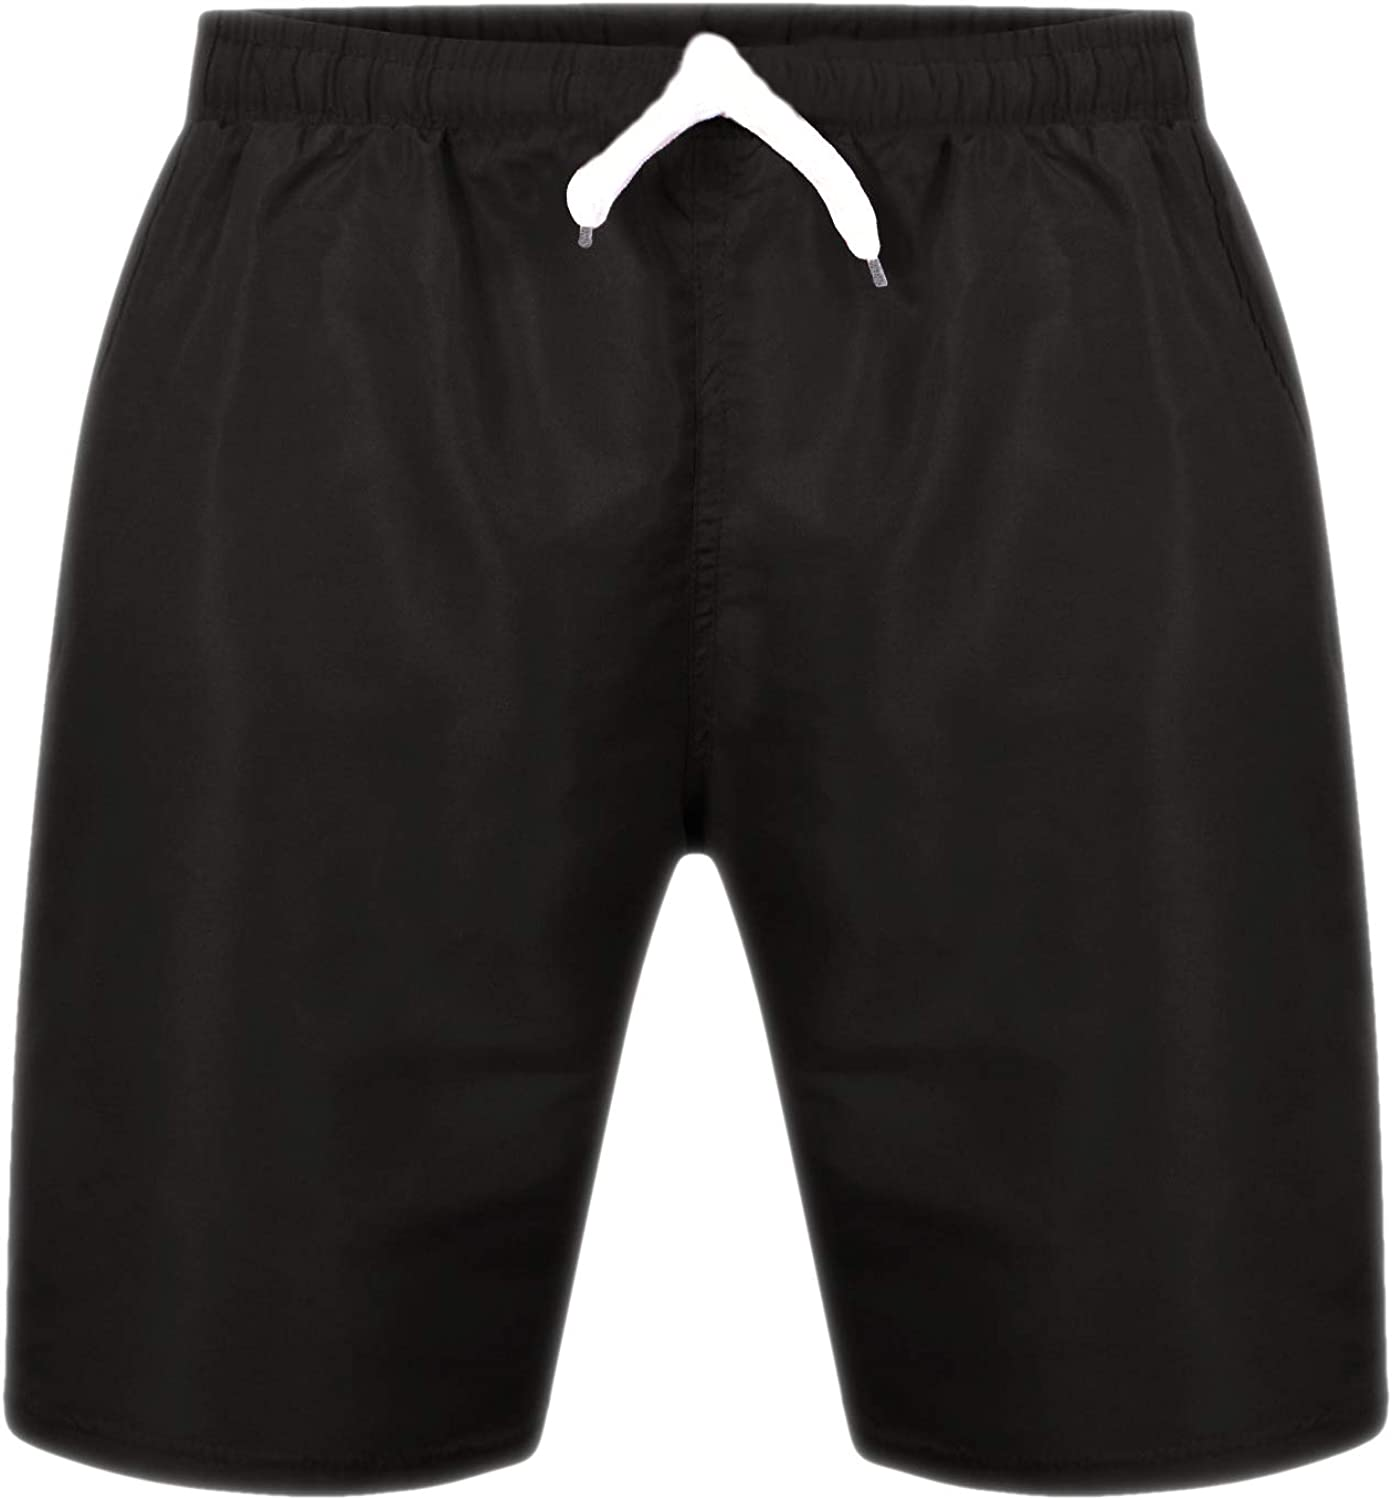 Aelstores Boys Swimming Shorts Plain Surf Trunks Holiday Summer Mesh Lining Age 3-16 Years